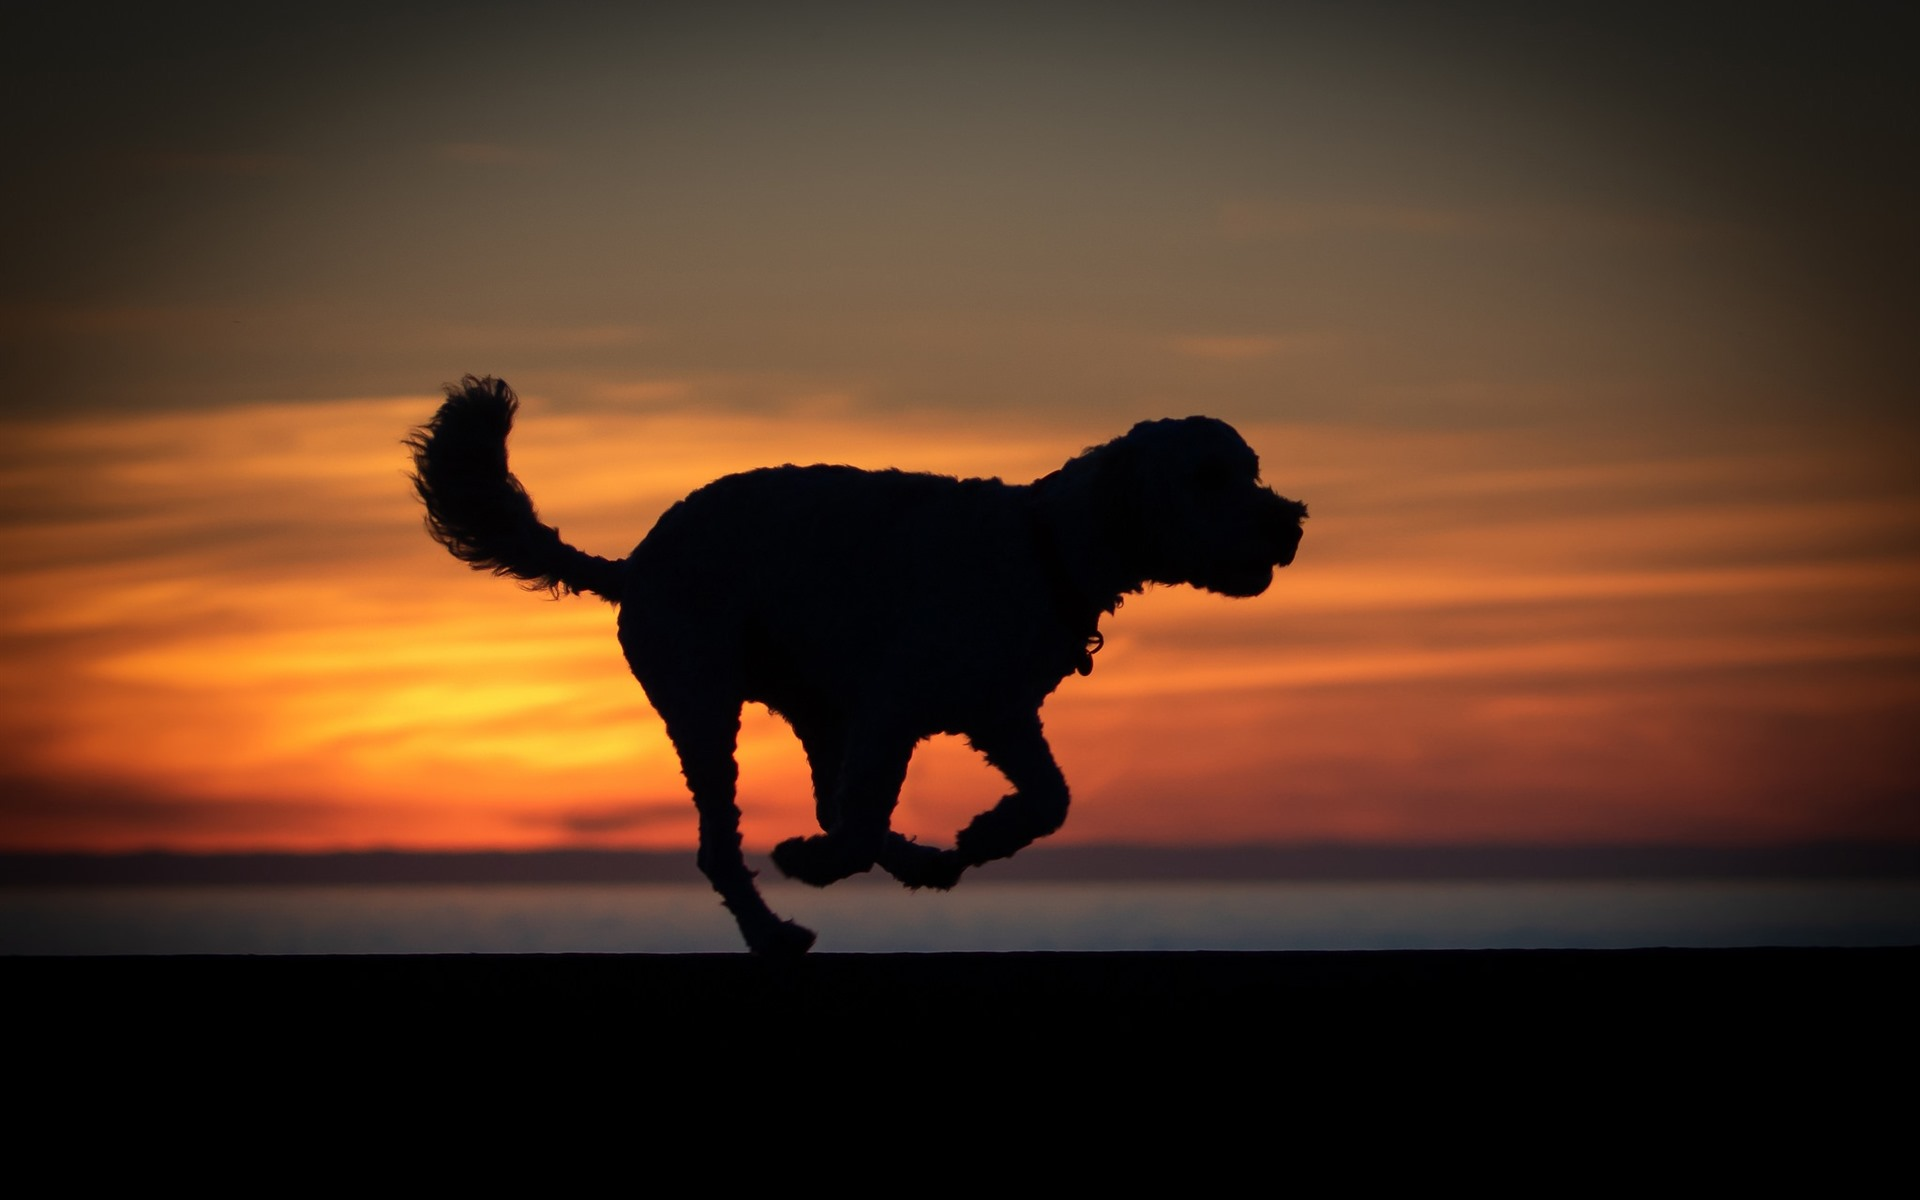 Cute French Bulldog Wallpapers Wallpaper Dog Run Silhouette Sunset 1920x1200 Hd Picture